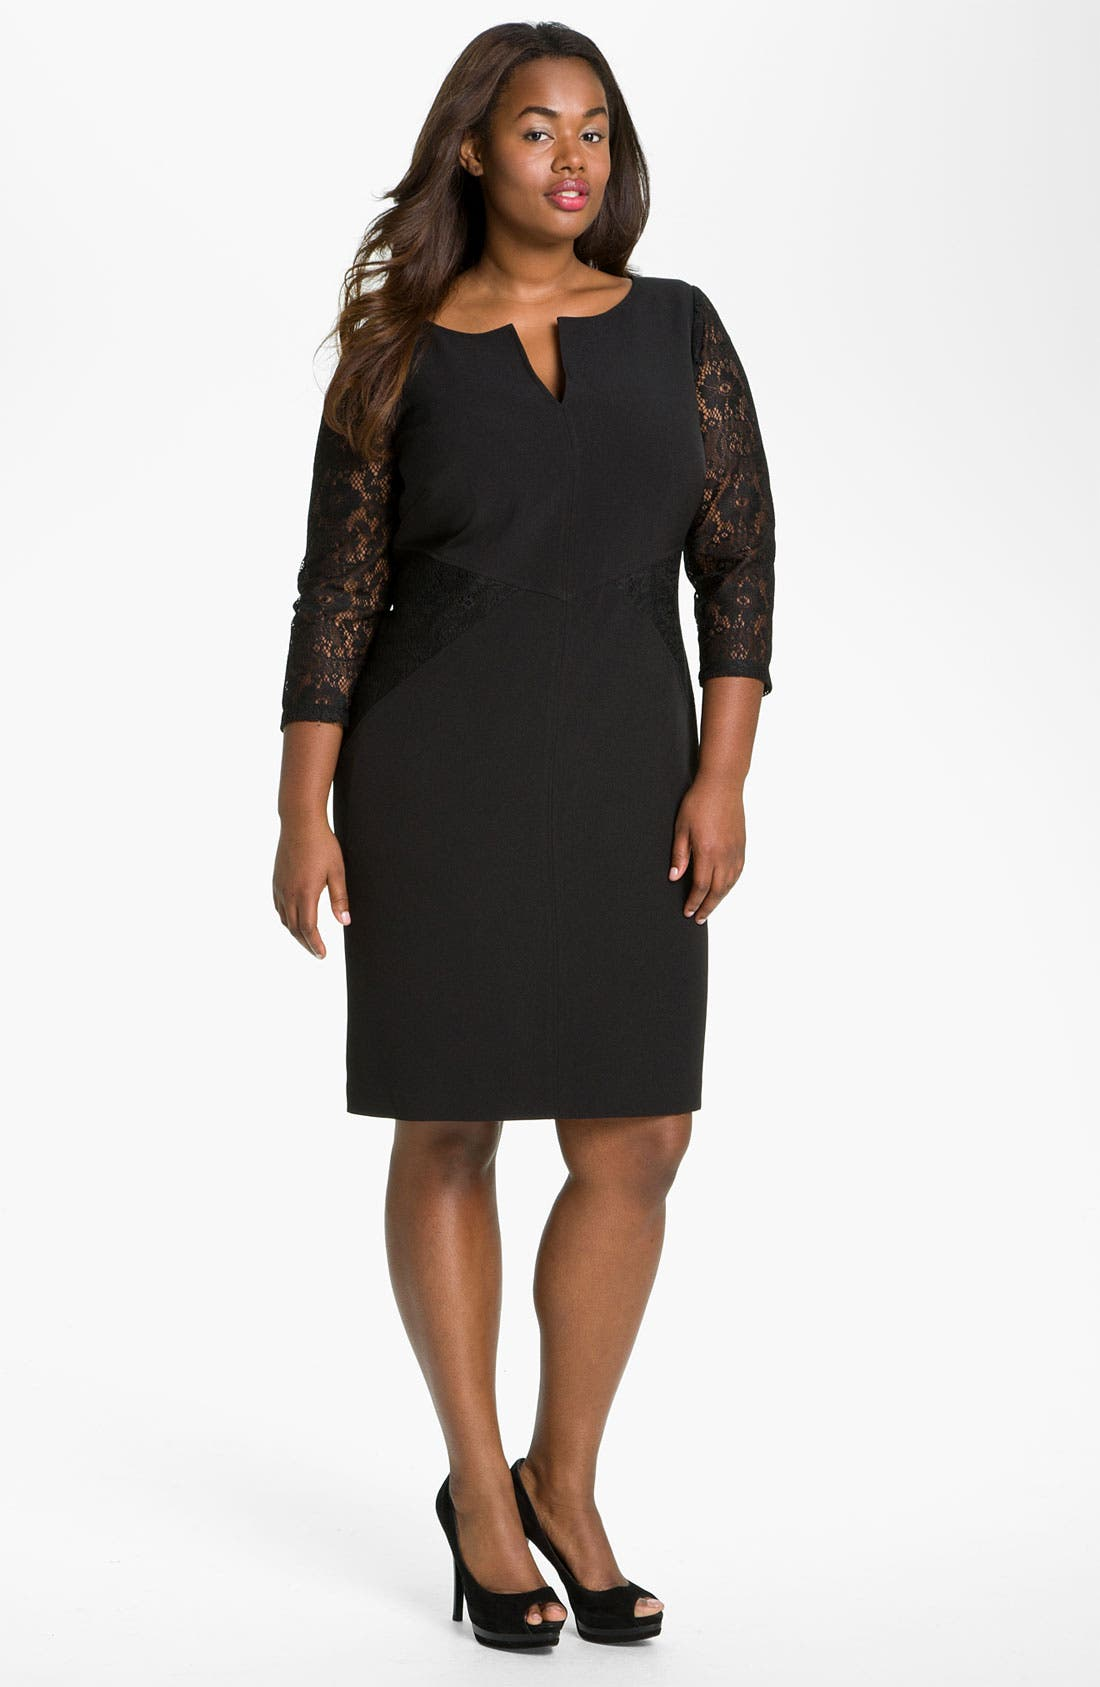 Alternate Image 1 Selected - Adrianna Papell Lace Crepe Sheath Dress (Plus)